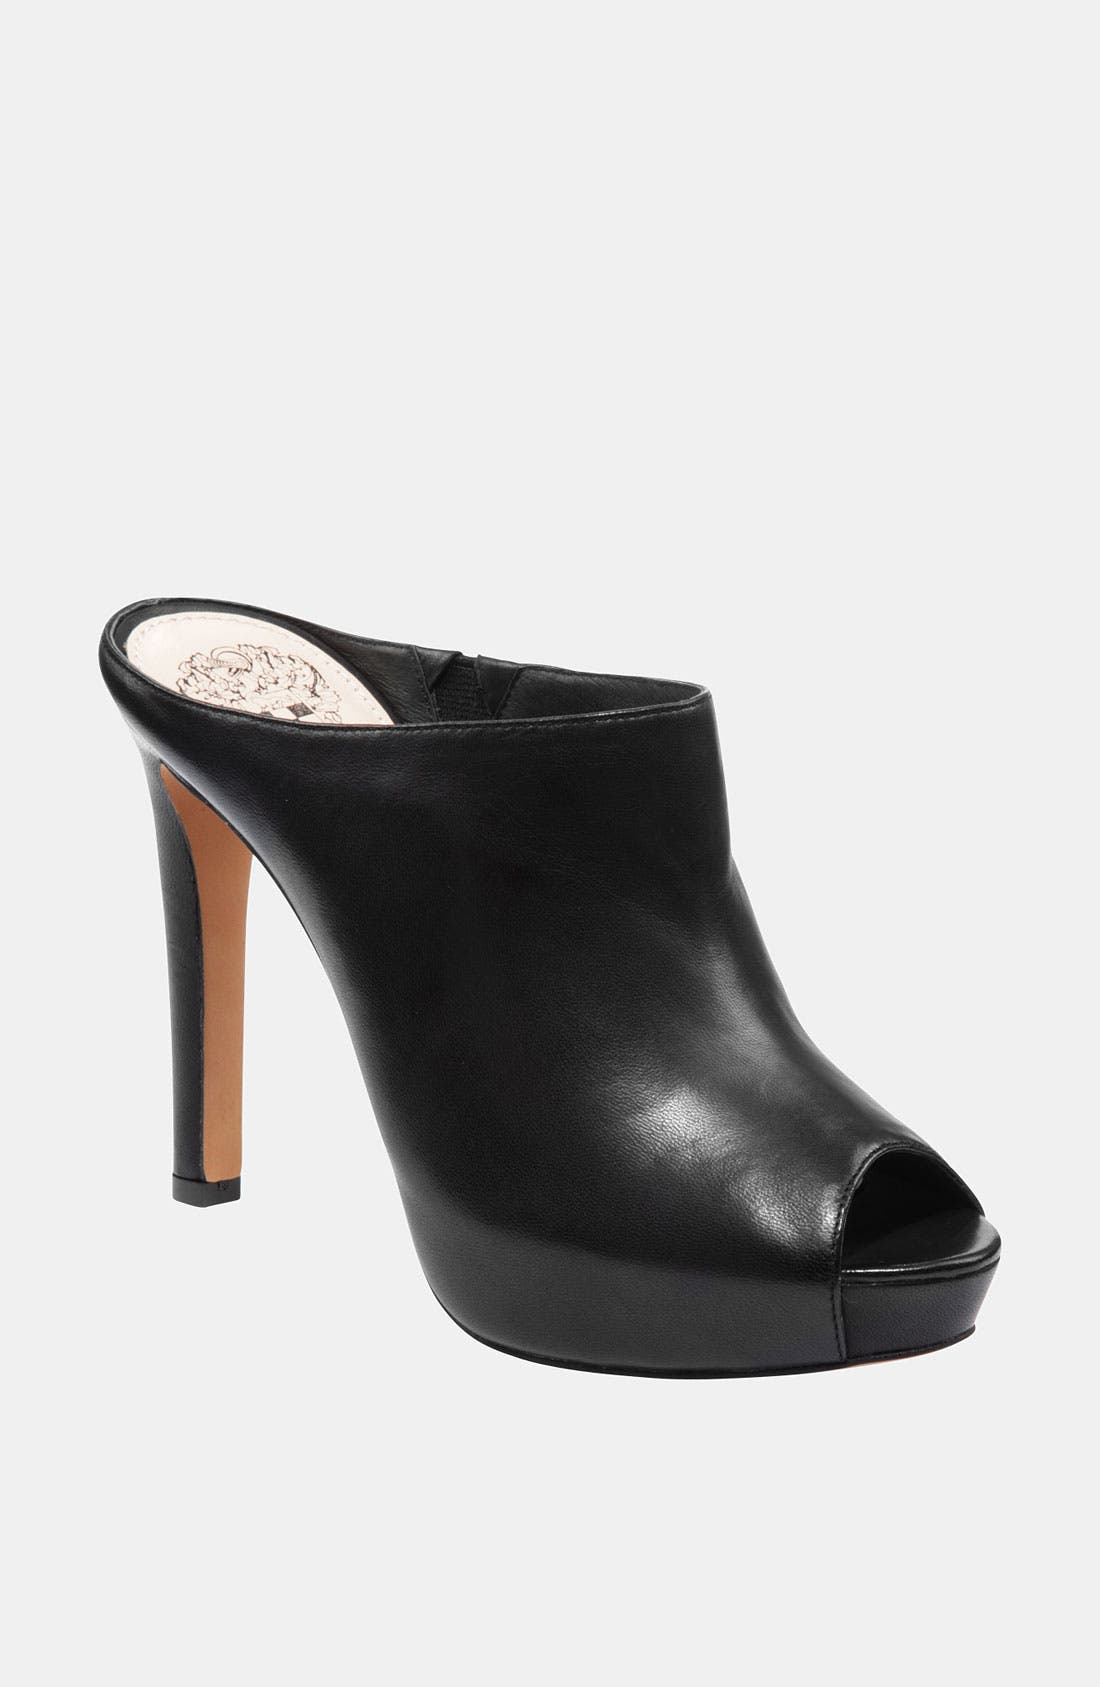 Alternate Image 1 Selected - Vince Camuto 'Jacell' Pump (Online Only)